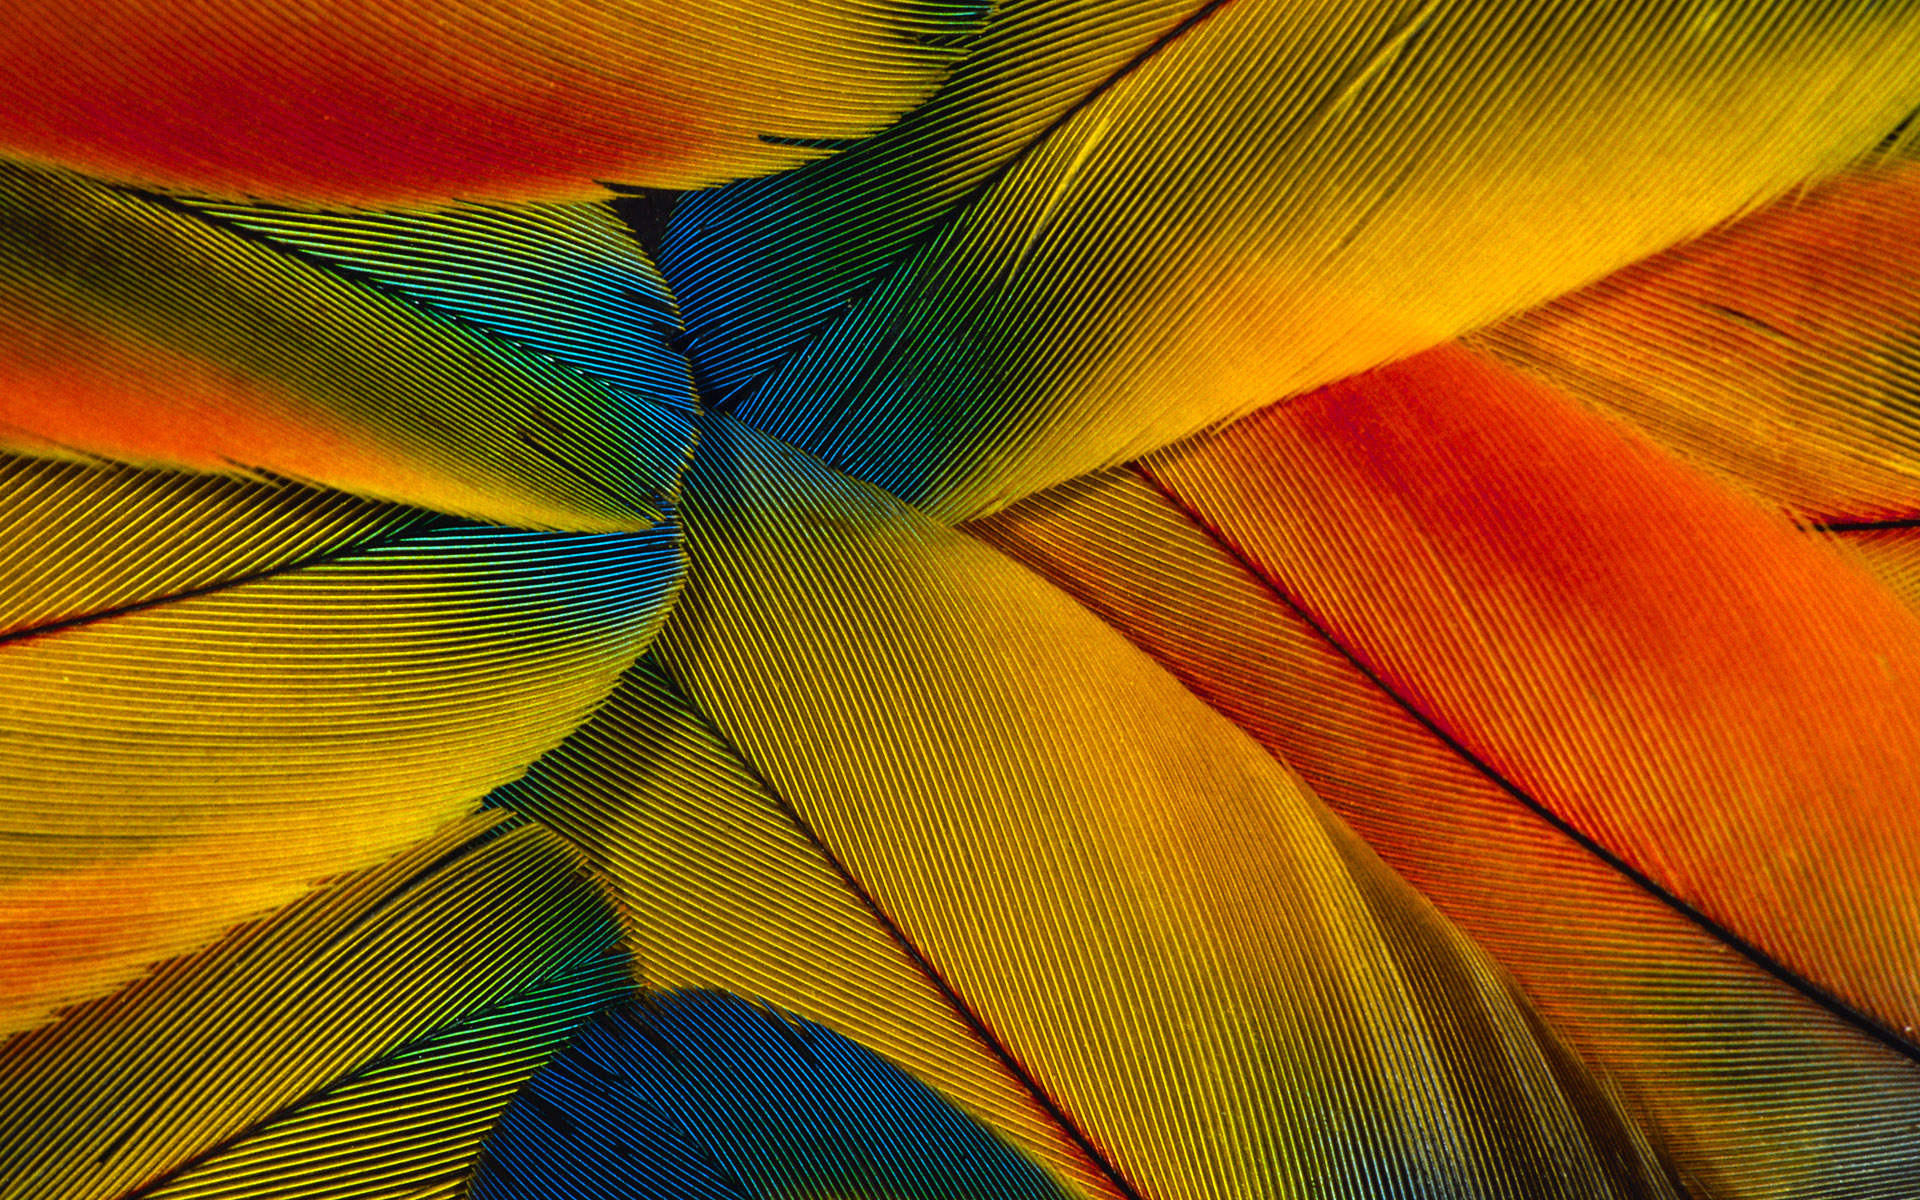 Feather colorful wallpaper Wallpapers   HD Wallpapers 85540 1920x1200